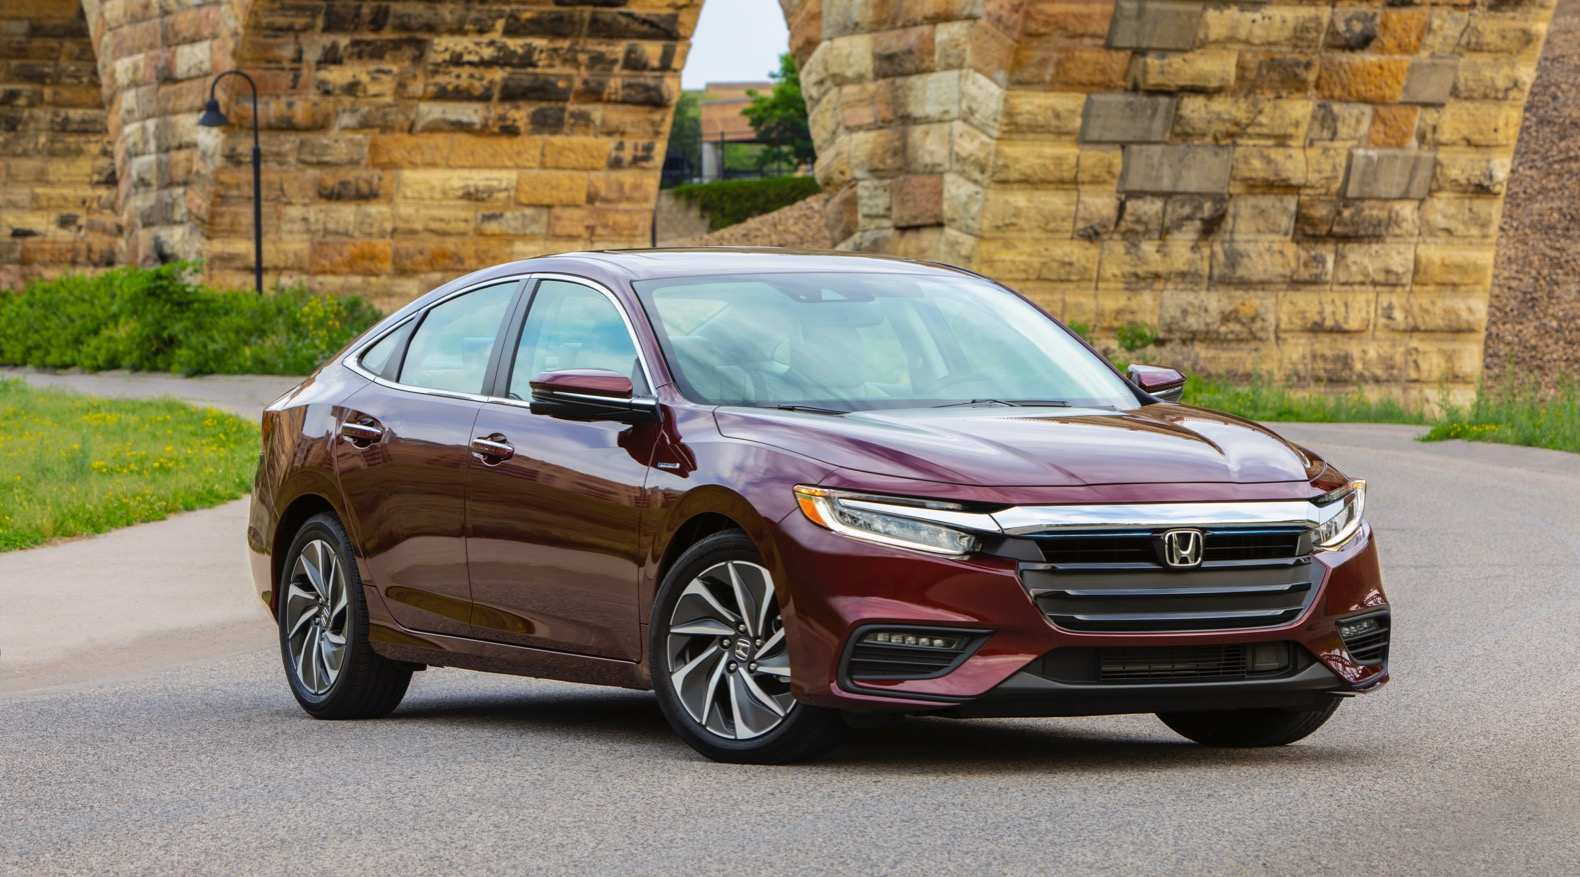 90 Gallery of The Honda 2019 Insight Review Specs New Review by The Honda 2019 Insight Review Specs